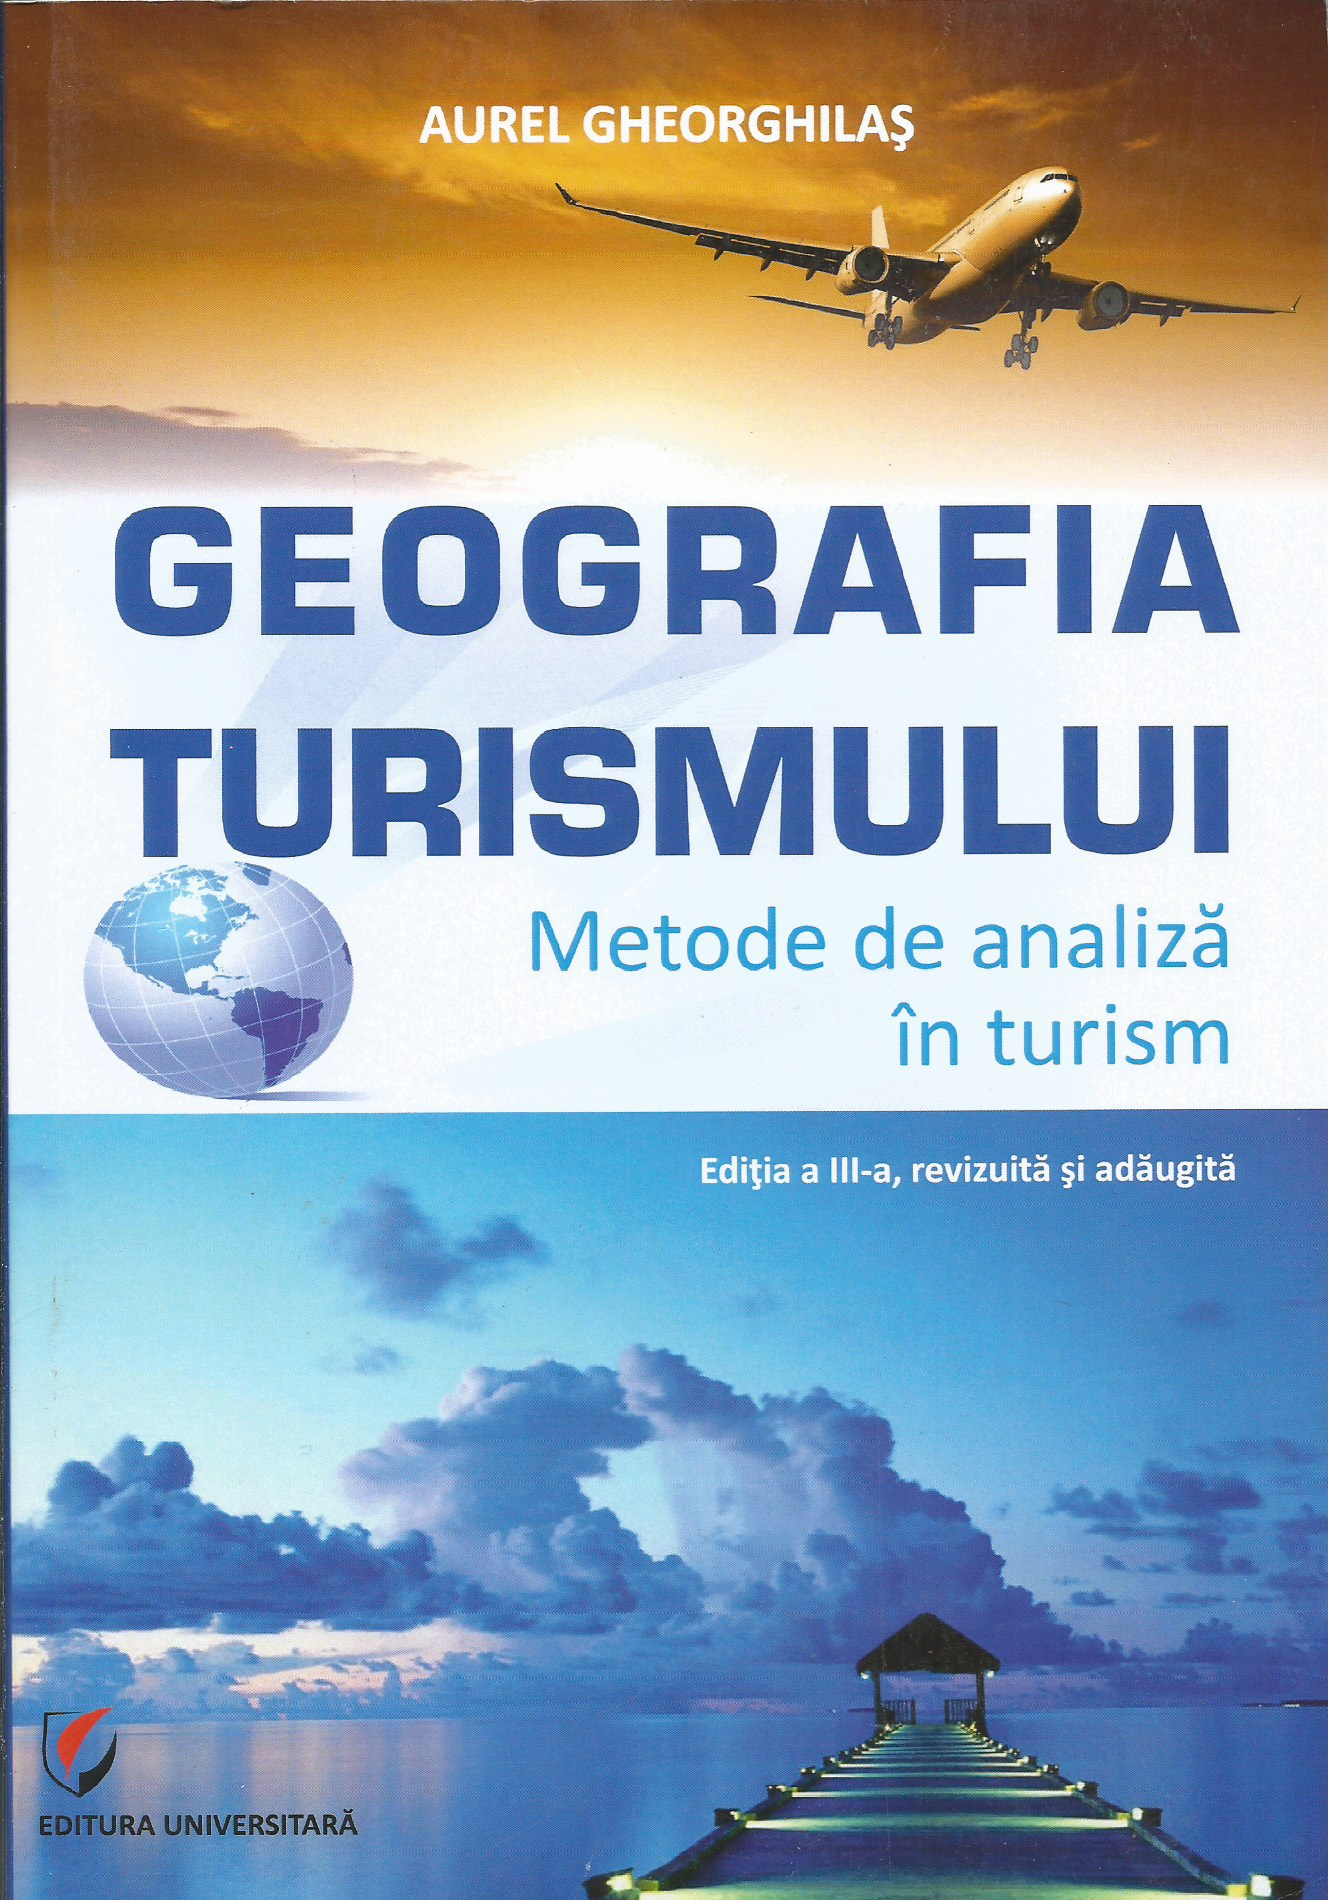 Geografia turismului Metode analiza turism